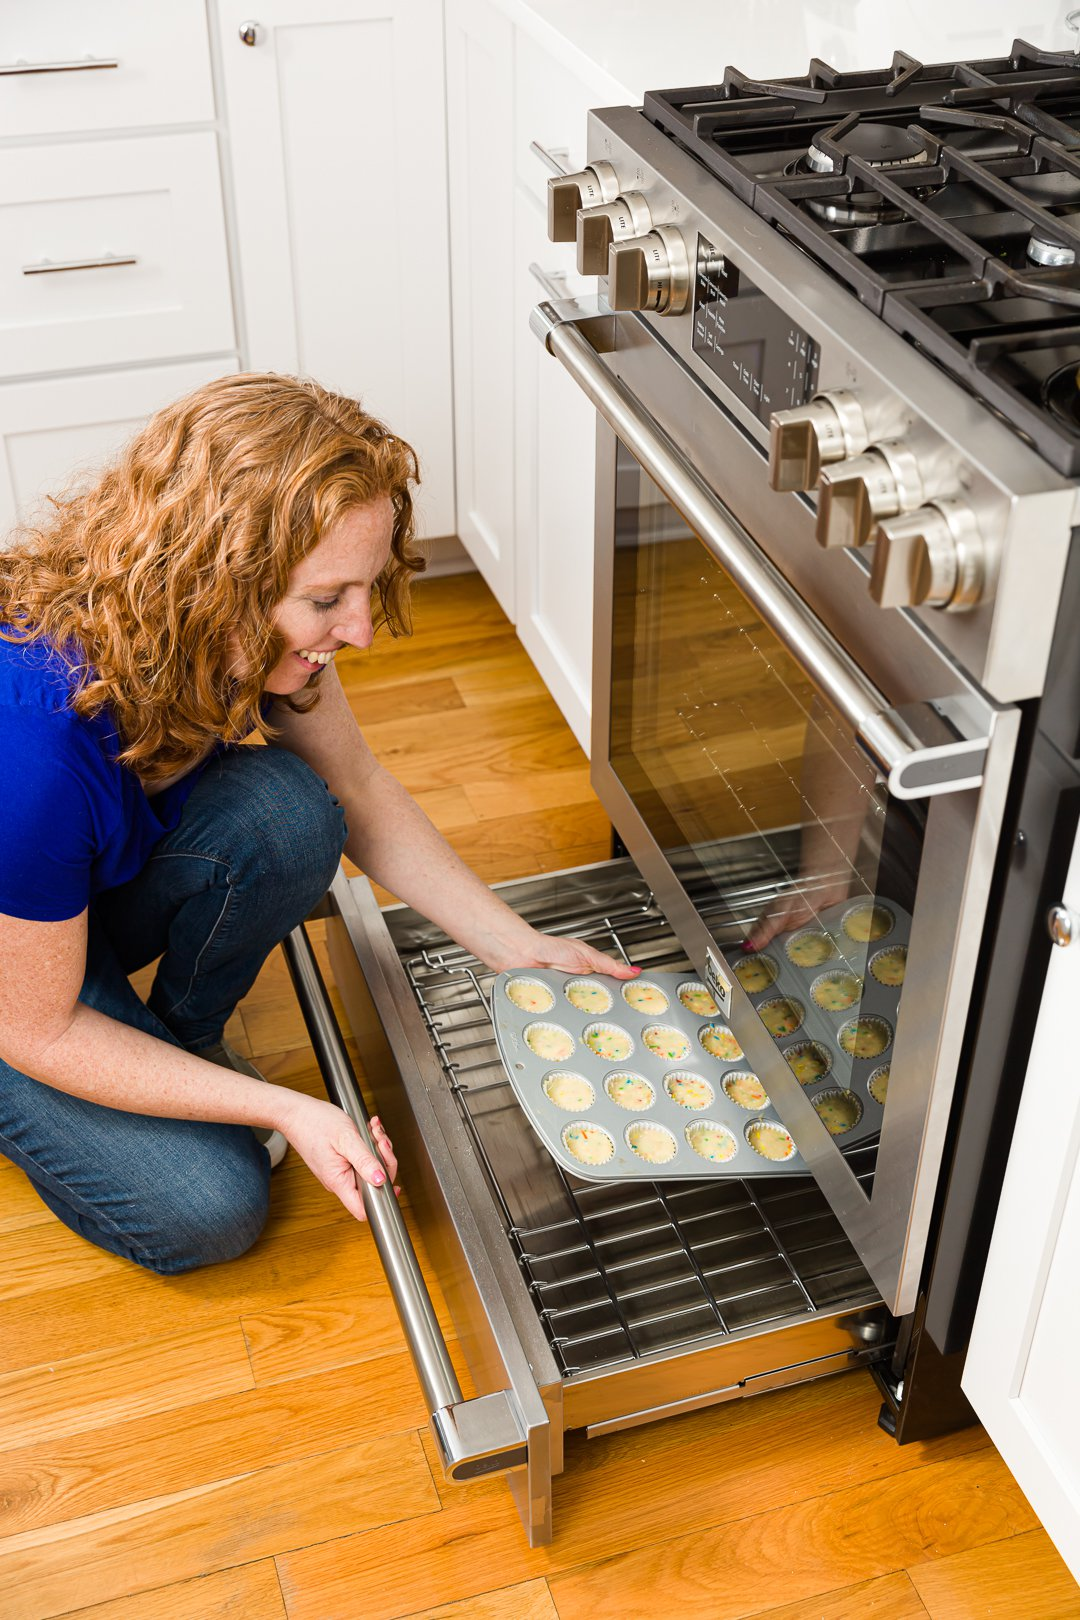 Loading cupcakes into the oven